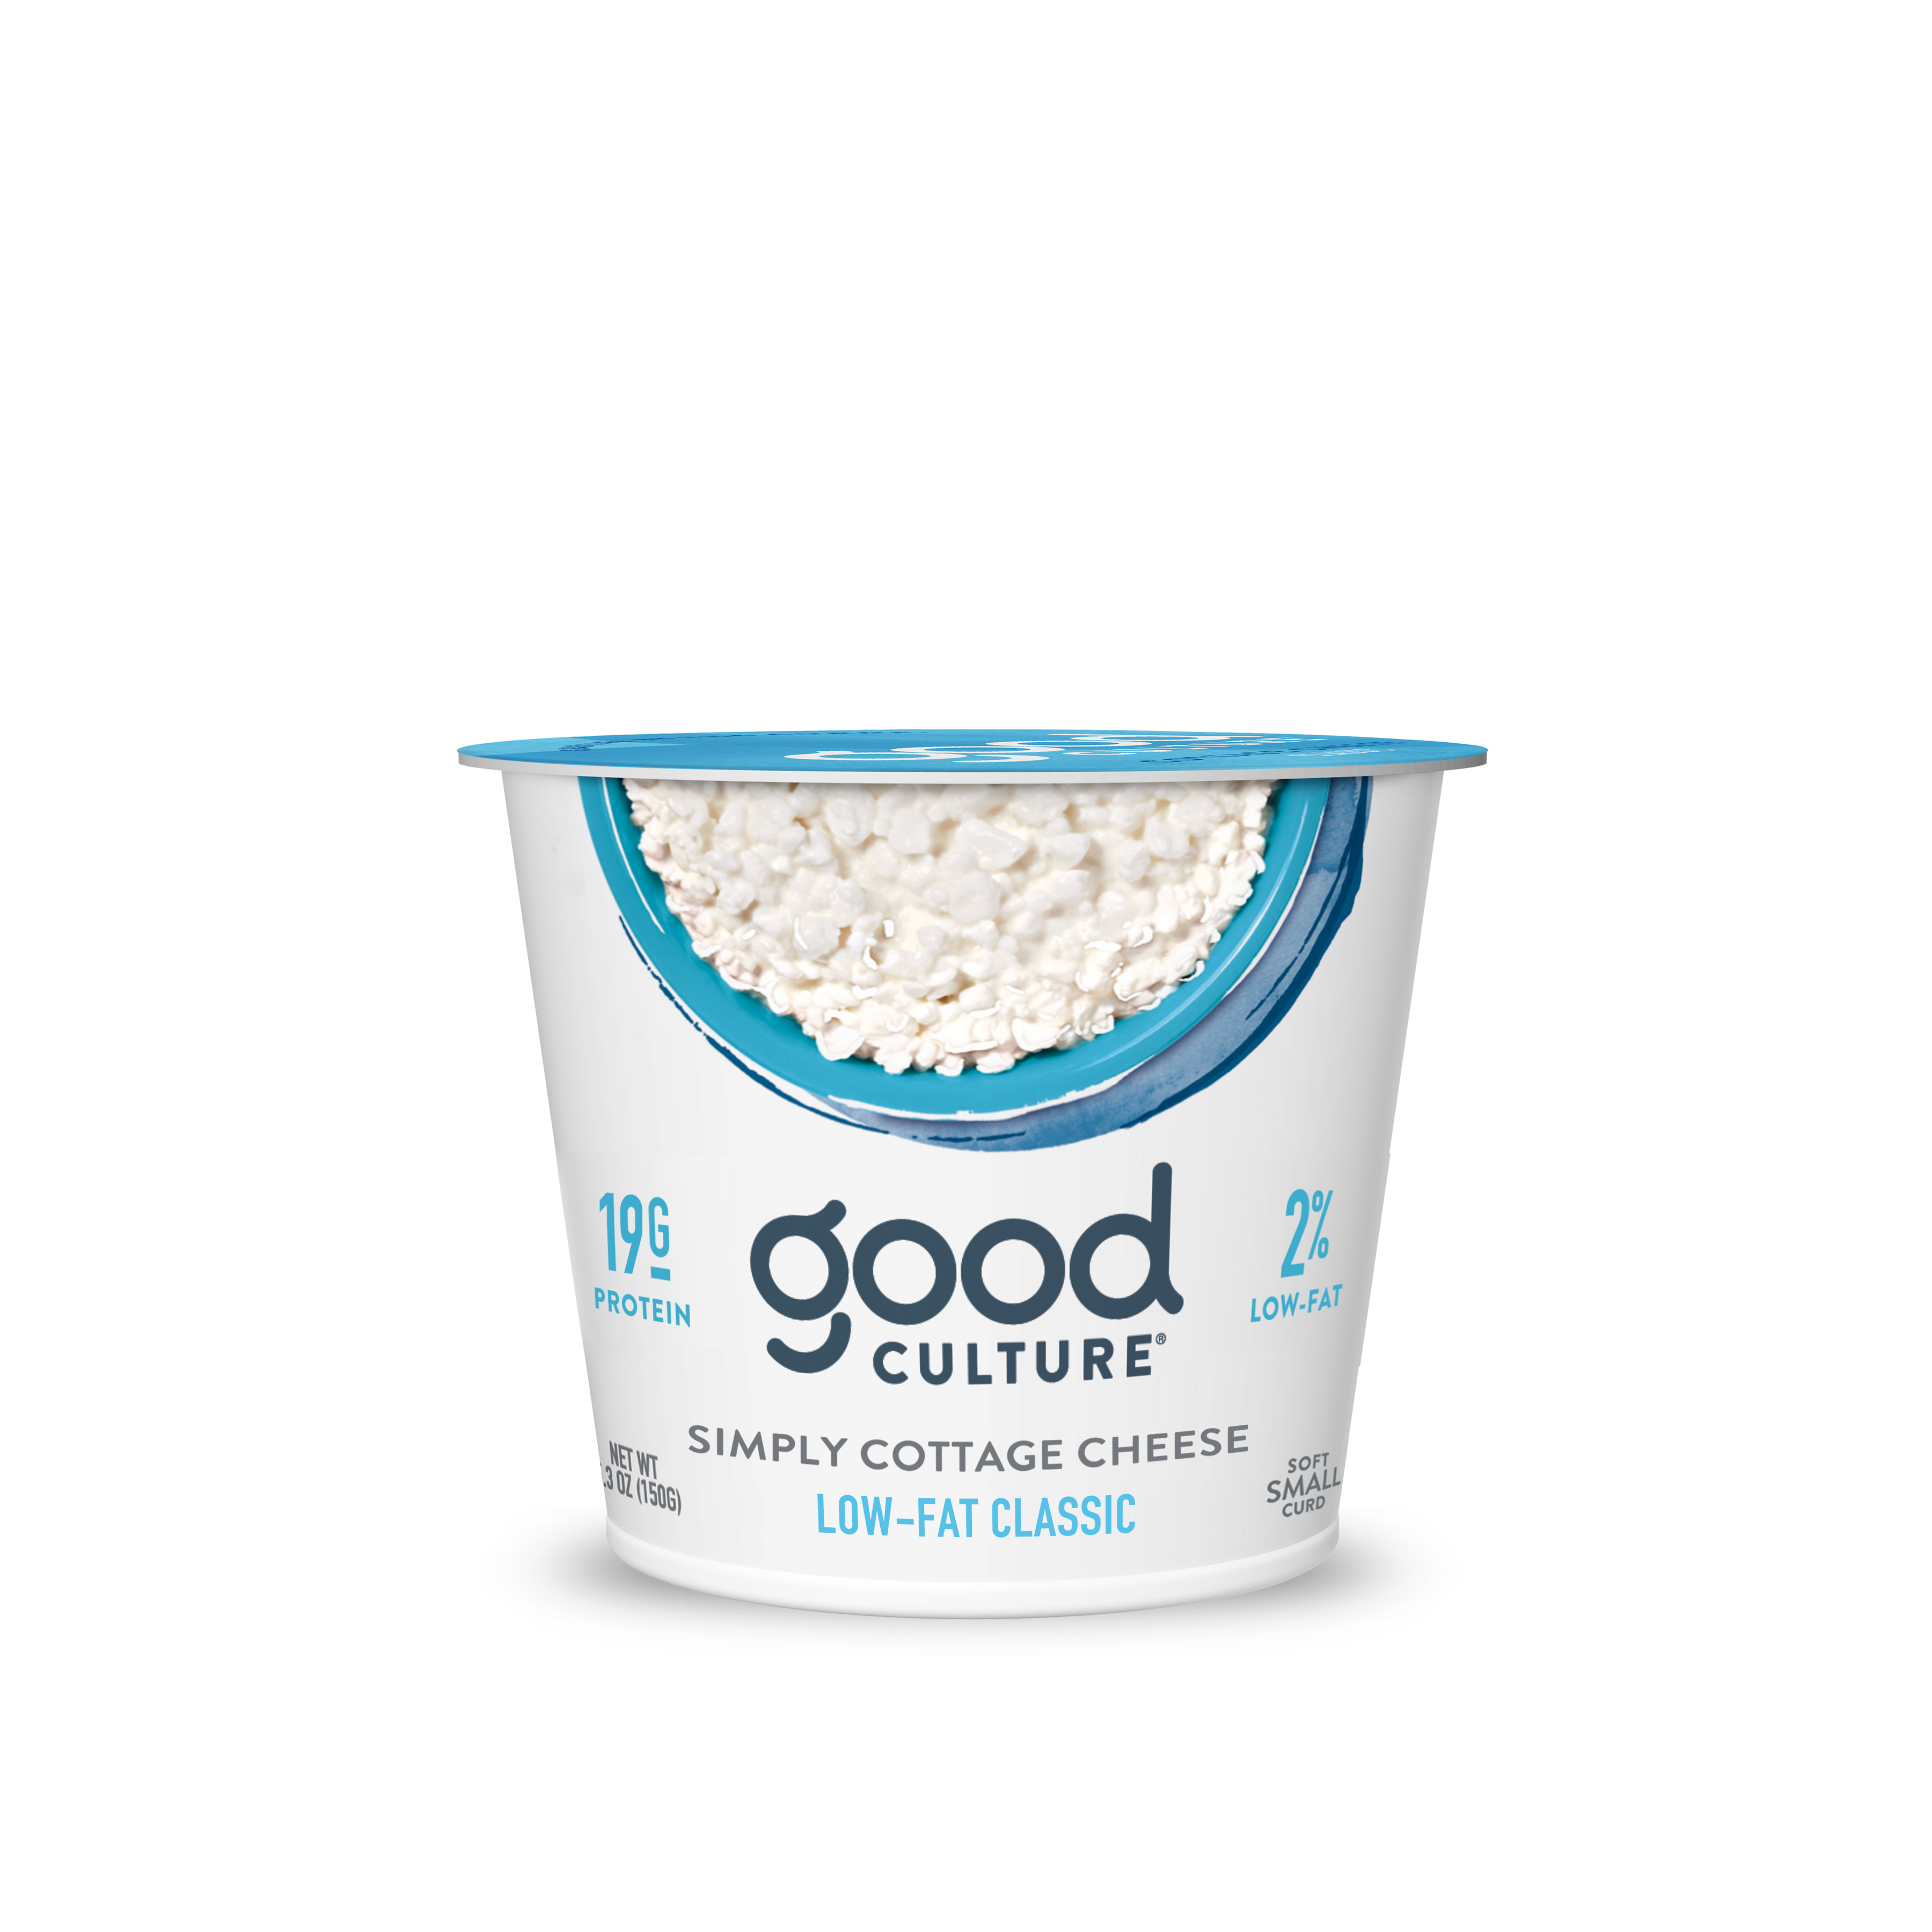 Good Culture 2% Low Fat Classic Simply Cottage Cheese, 5.3 Oz.